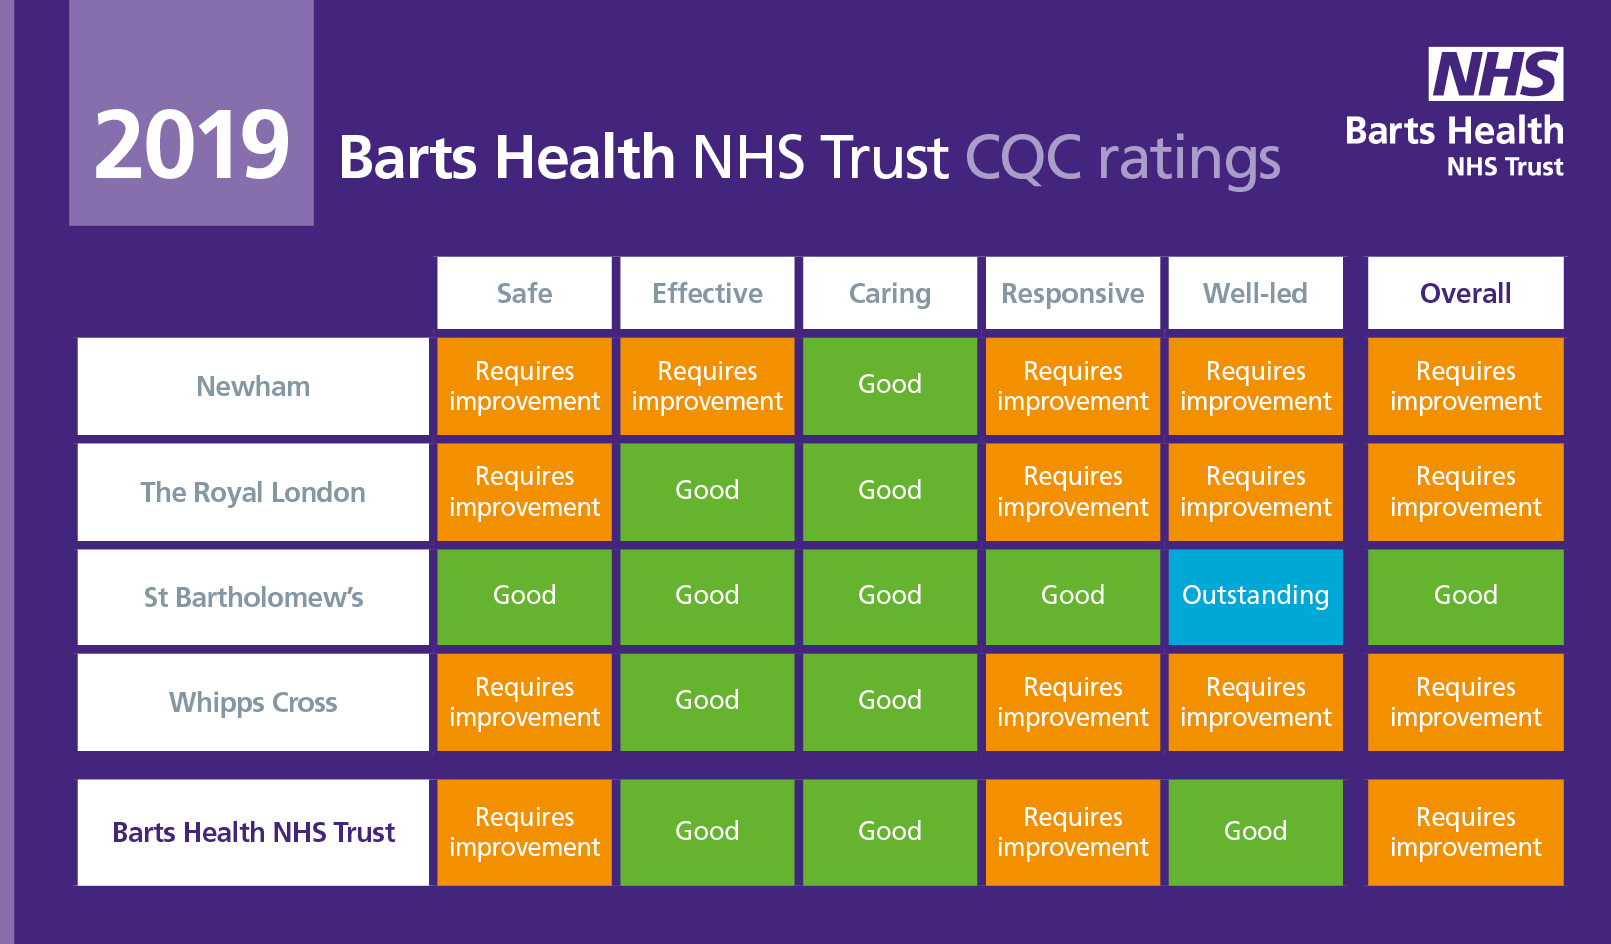 image-BH2619 CQC Results 2019 (Trust-wide).jpg